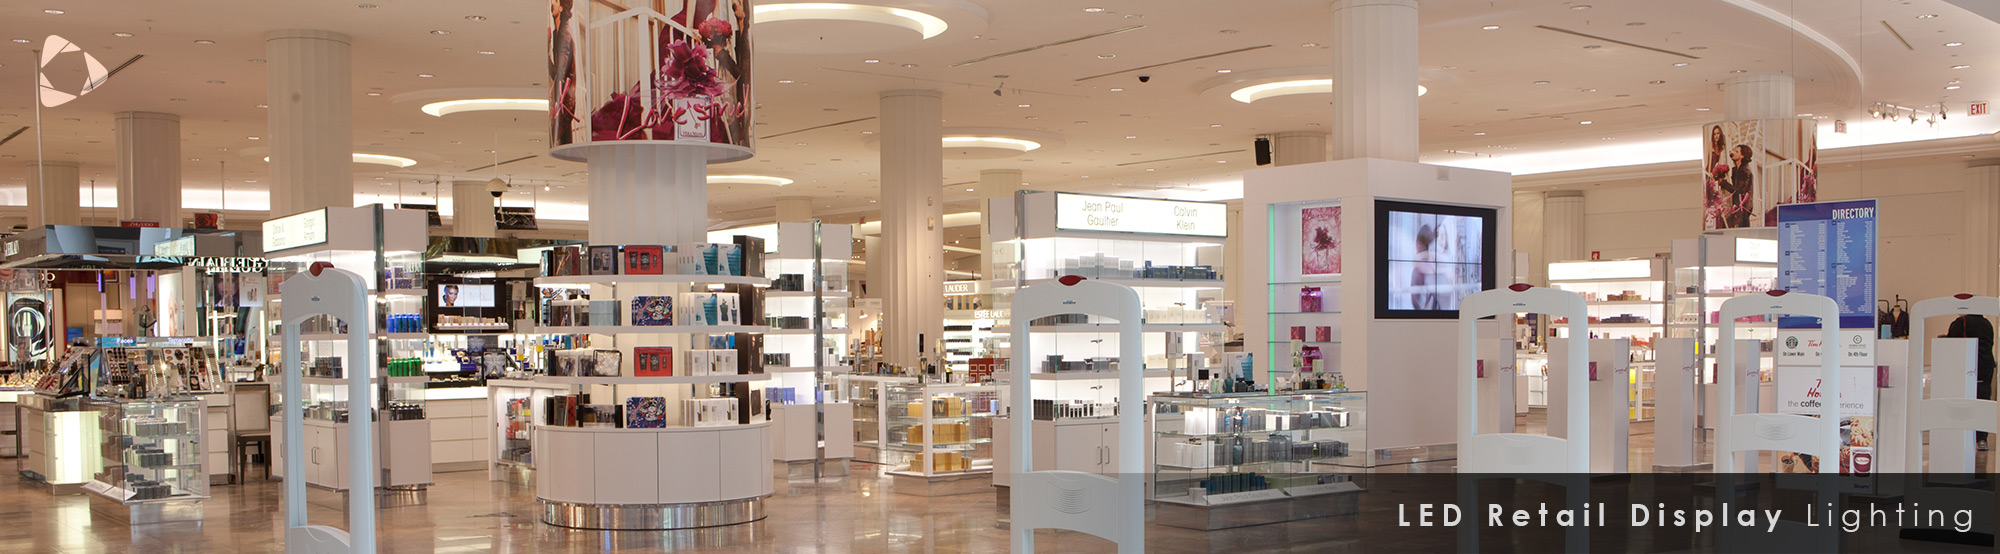 SGi LED Retail Display Lighting